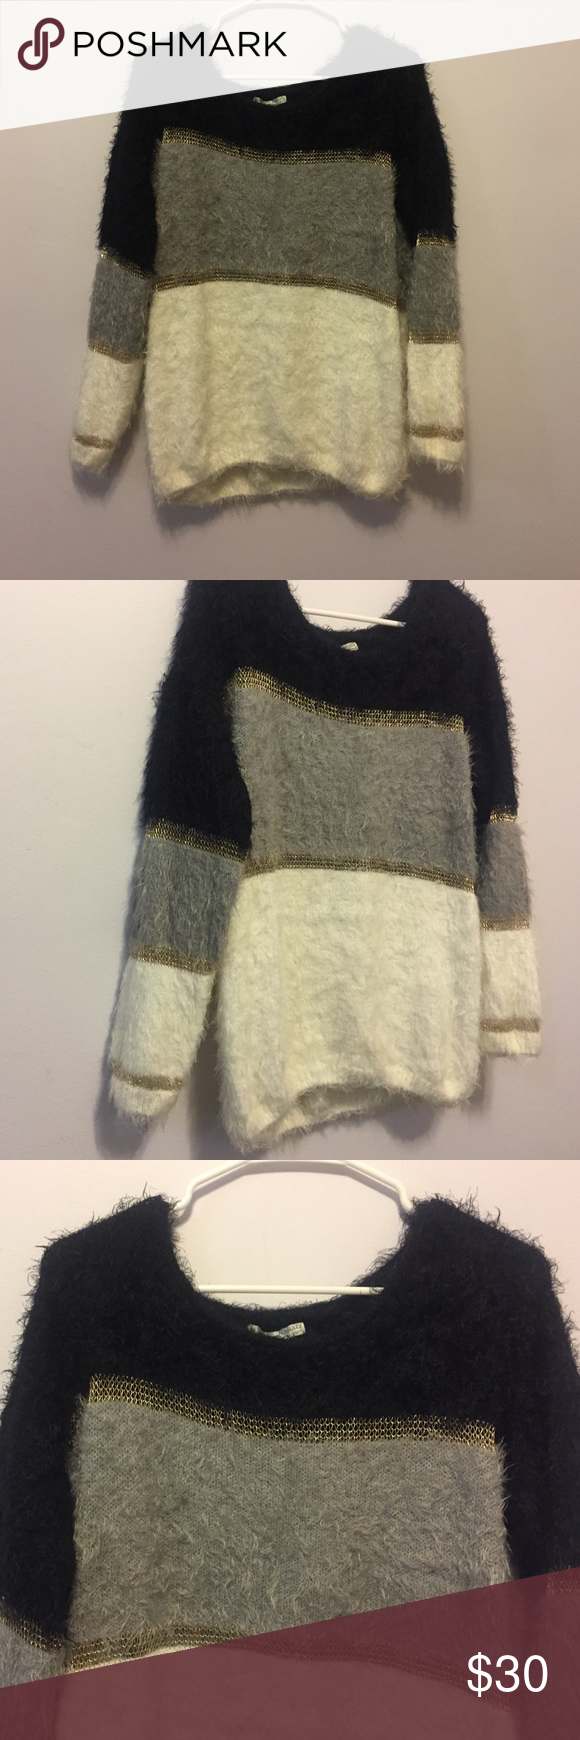 Fuzzy color-block sweater Alberto Makali fuzzy color block sweater in white, black, gray and gold details. Scoop neckline and relaxed silhouette. Acrylic/nylon/polyester. Worn once, great condition! Size medium! Alberto Makali Sweaters Crew & Scoop Necks